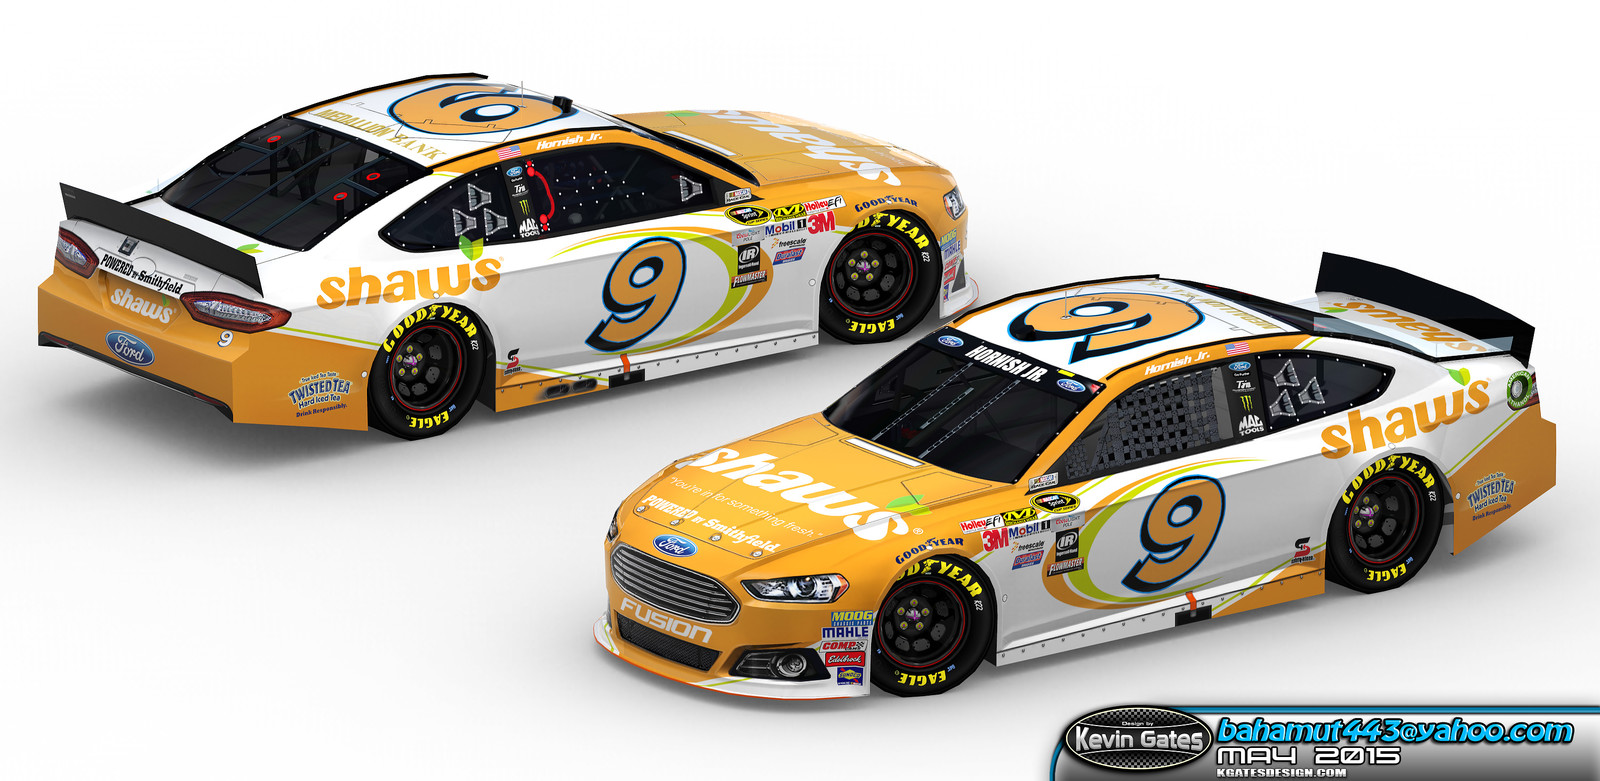 Original Autodesk 3DS Max render of the finalized 2015 #9 Shaw's Supermarkets Ford Fusion driven by NASCAR Sprint Cup Series driver Sam Hornish Jr. of Richard Petty Motorsports